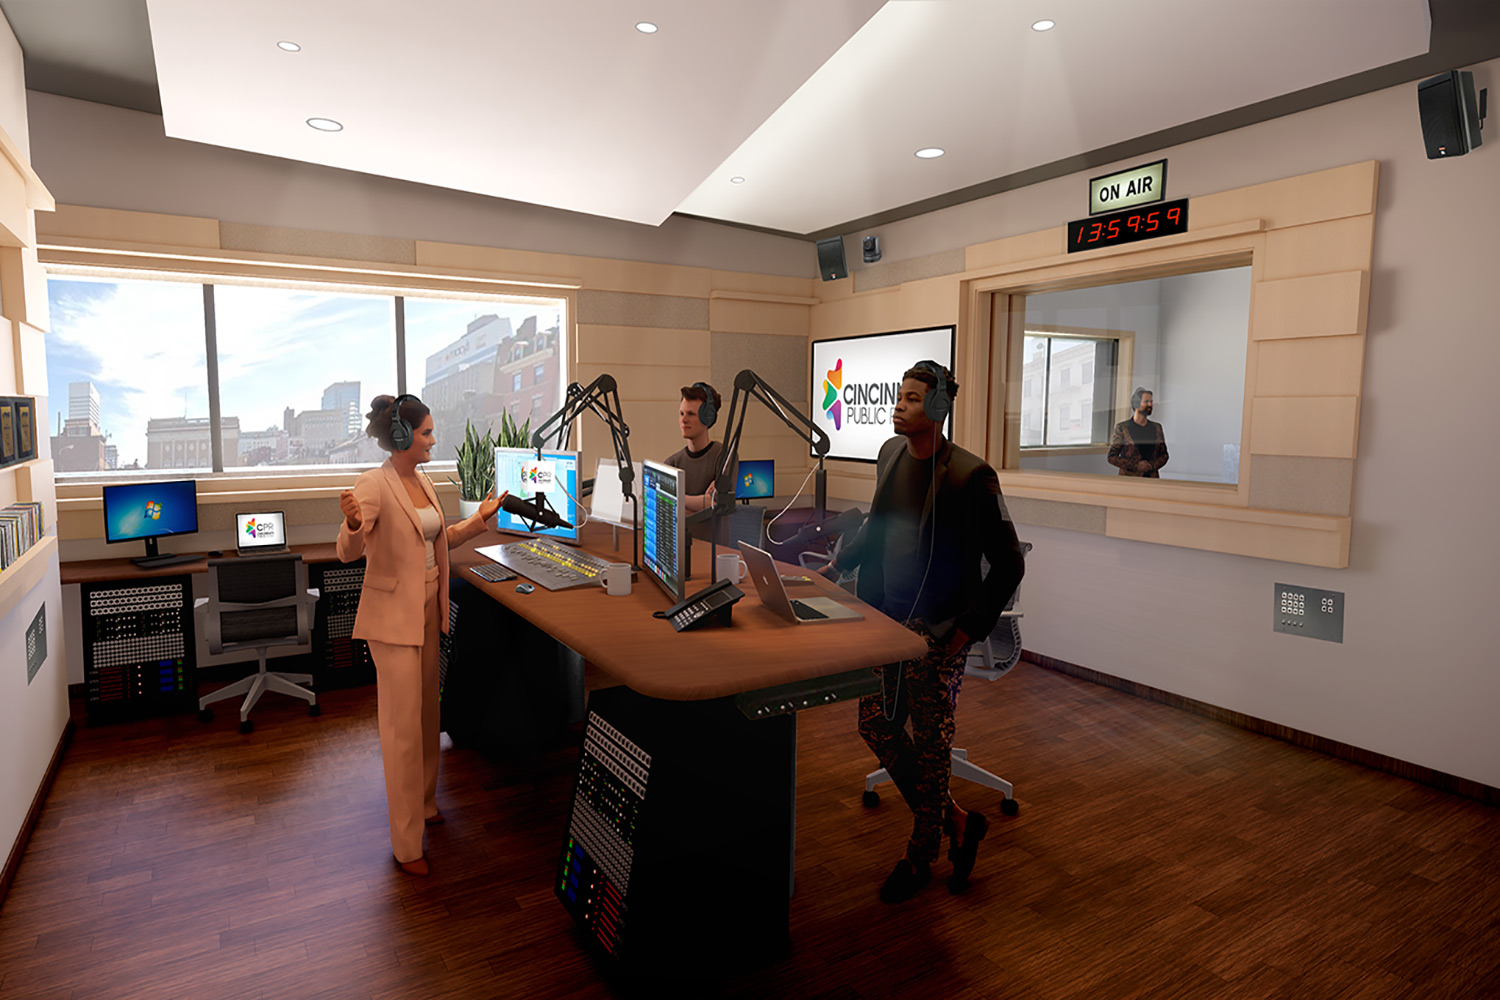 WSDG services were retained for the design of one recording studio, two productions studios and overall acoustics of the new headquarters for the Cincinnati Public Radio. On-Air Studio 2.